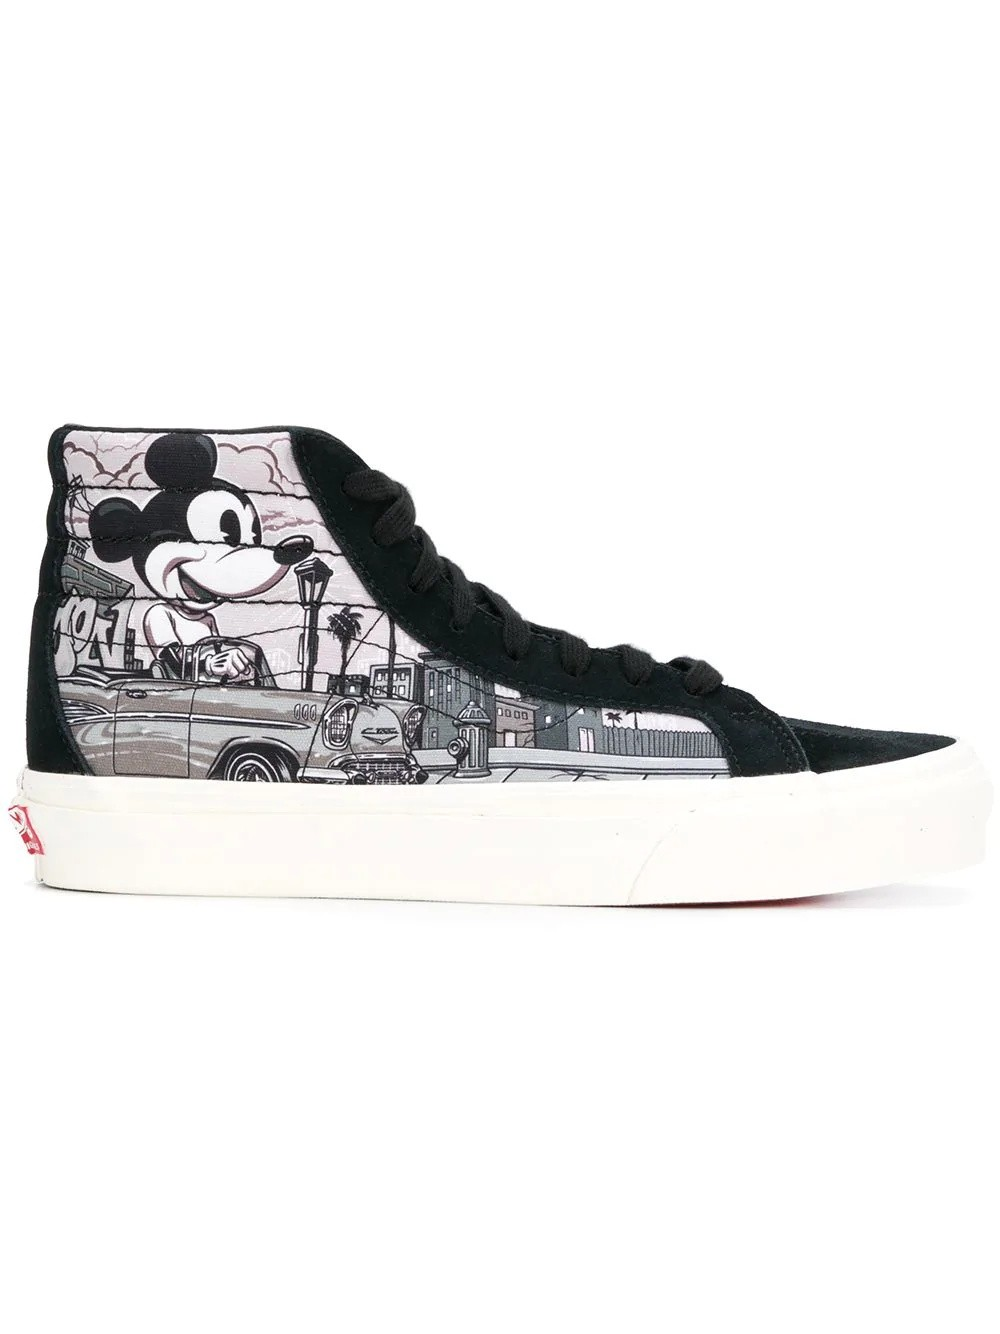 VANS Sk8-hi Mister Cartoon Disney Mickey Mouse 90th Anniversary VA38FYRNN